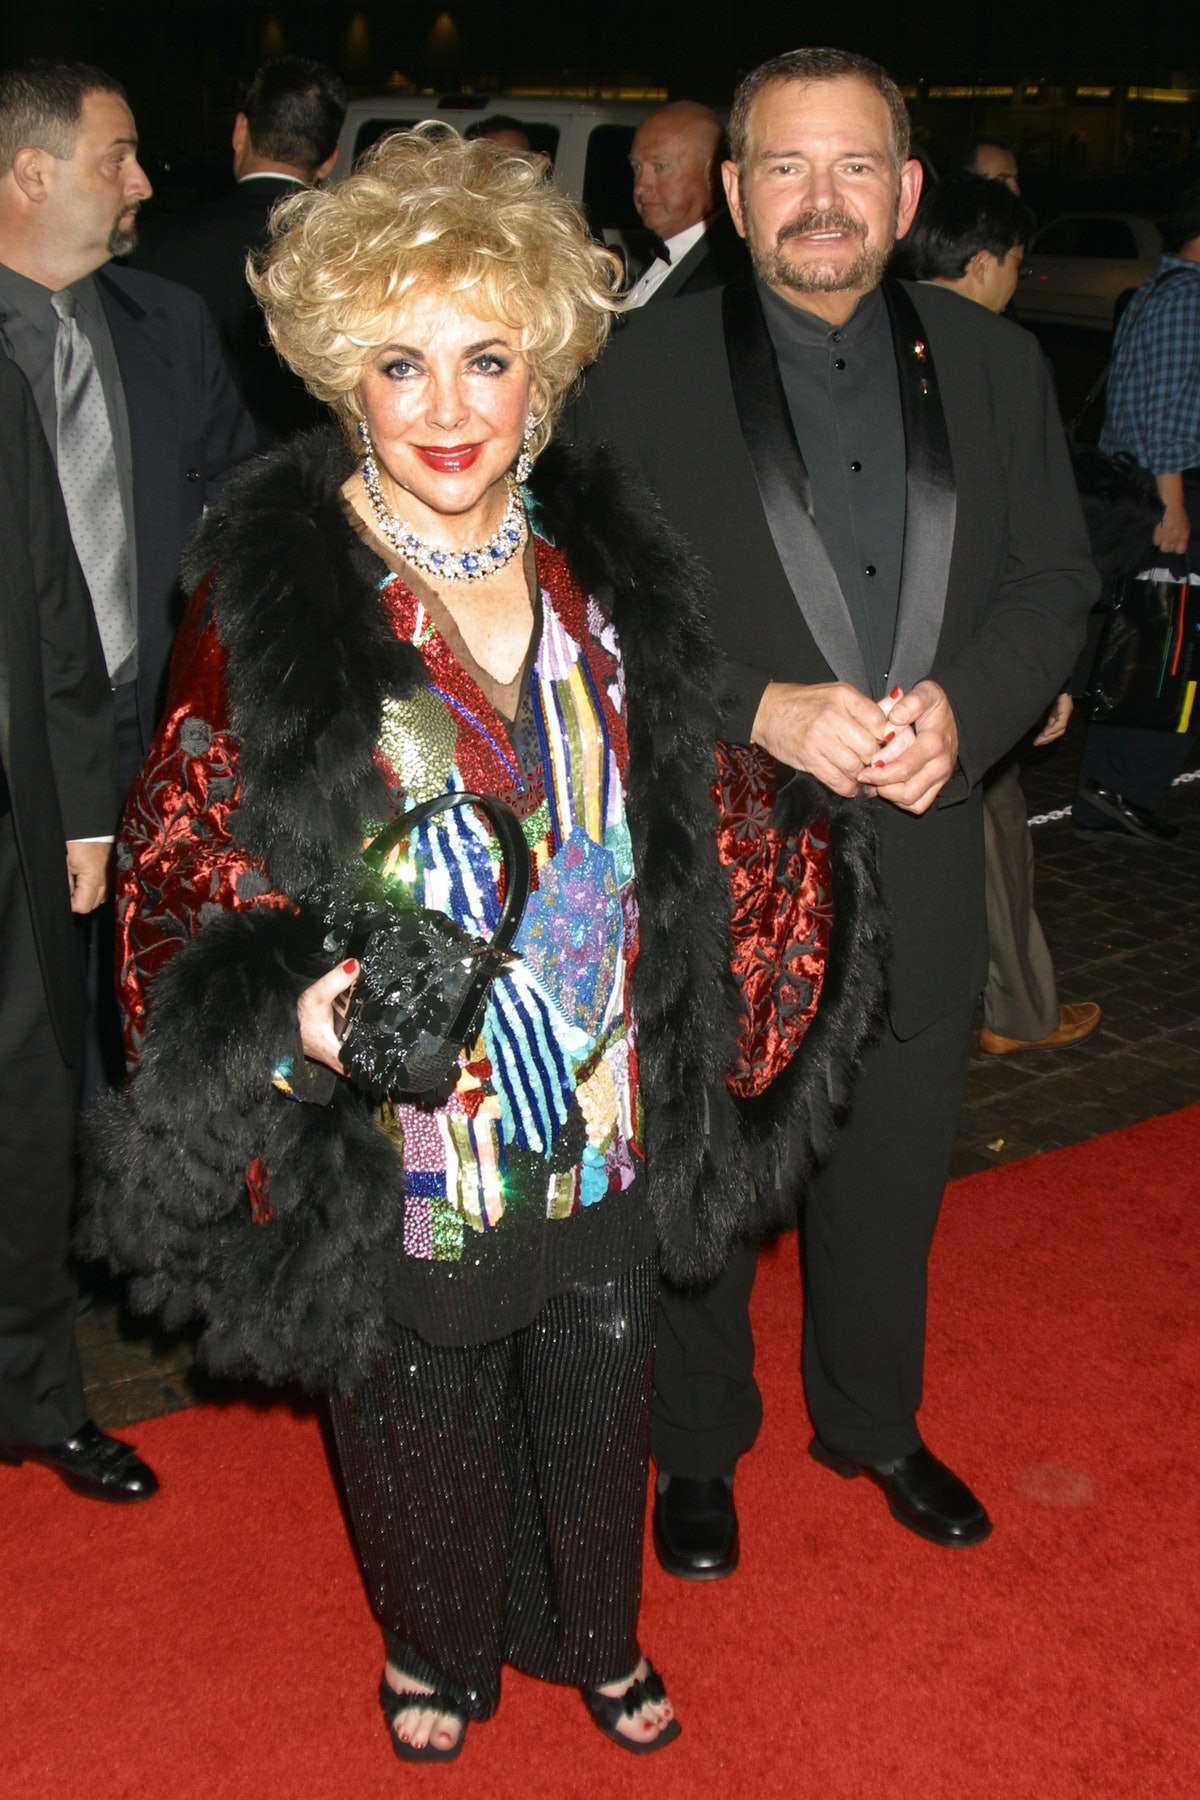 Elizabeth Taylor arriving at the Beverly Hilton Hotel for the 15th Annual Carousel of Hope Ball in B...